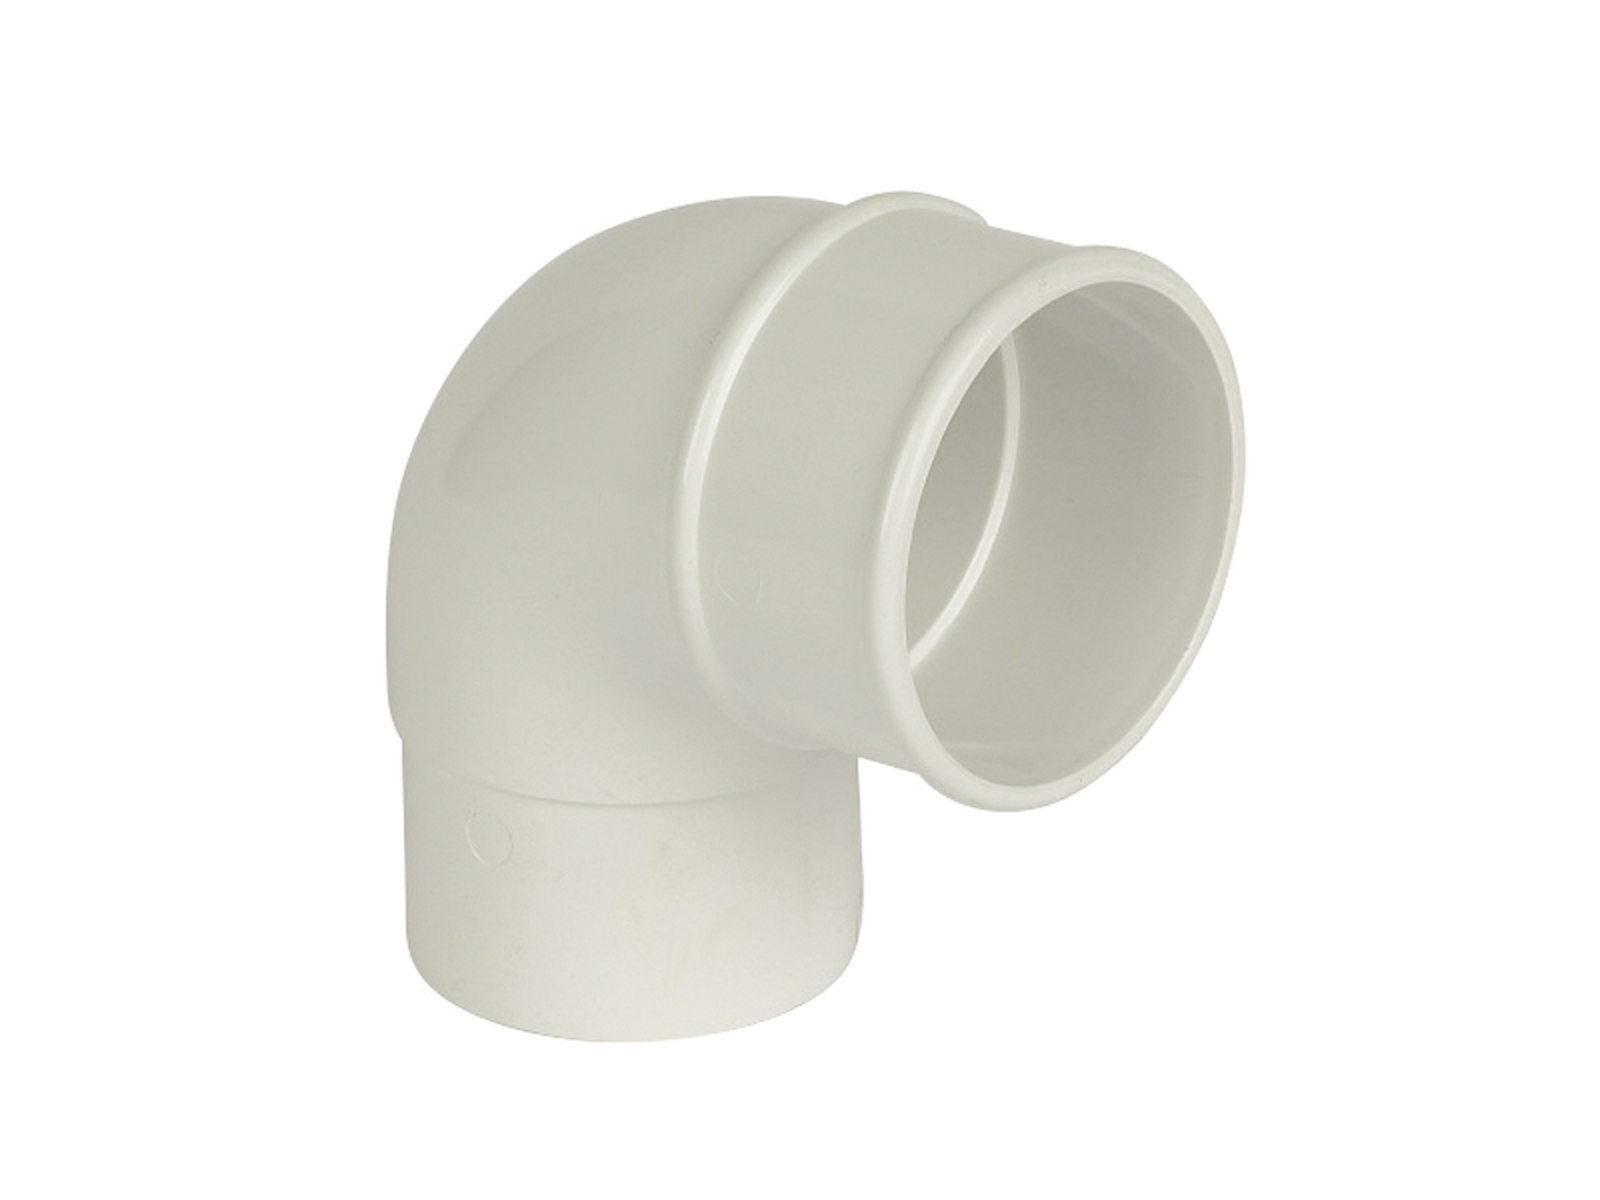 FLOPLAST RB1WH 68MM ROUND DOWNPIPE - 92.5* OFFSET BEND - WHITE